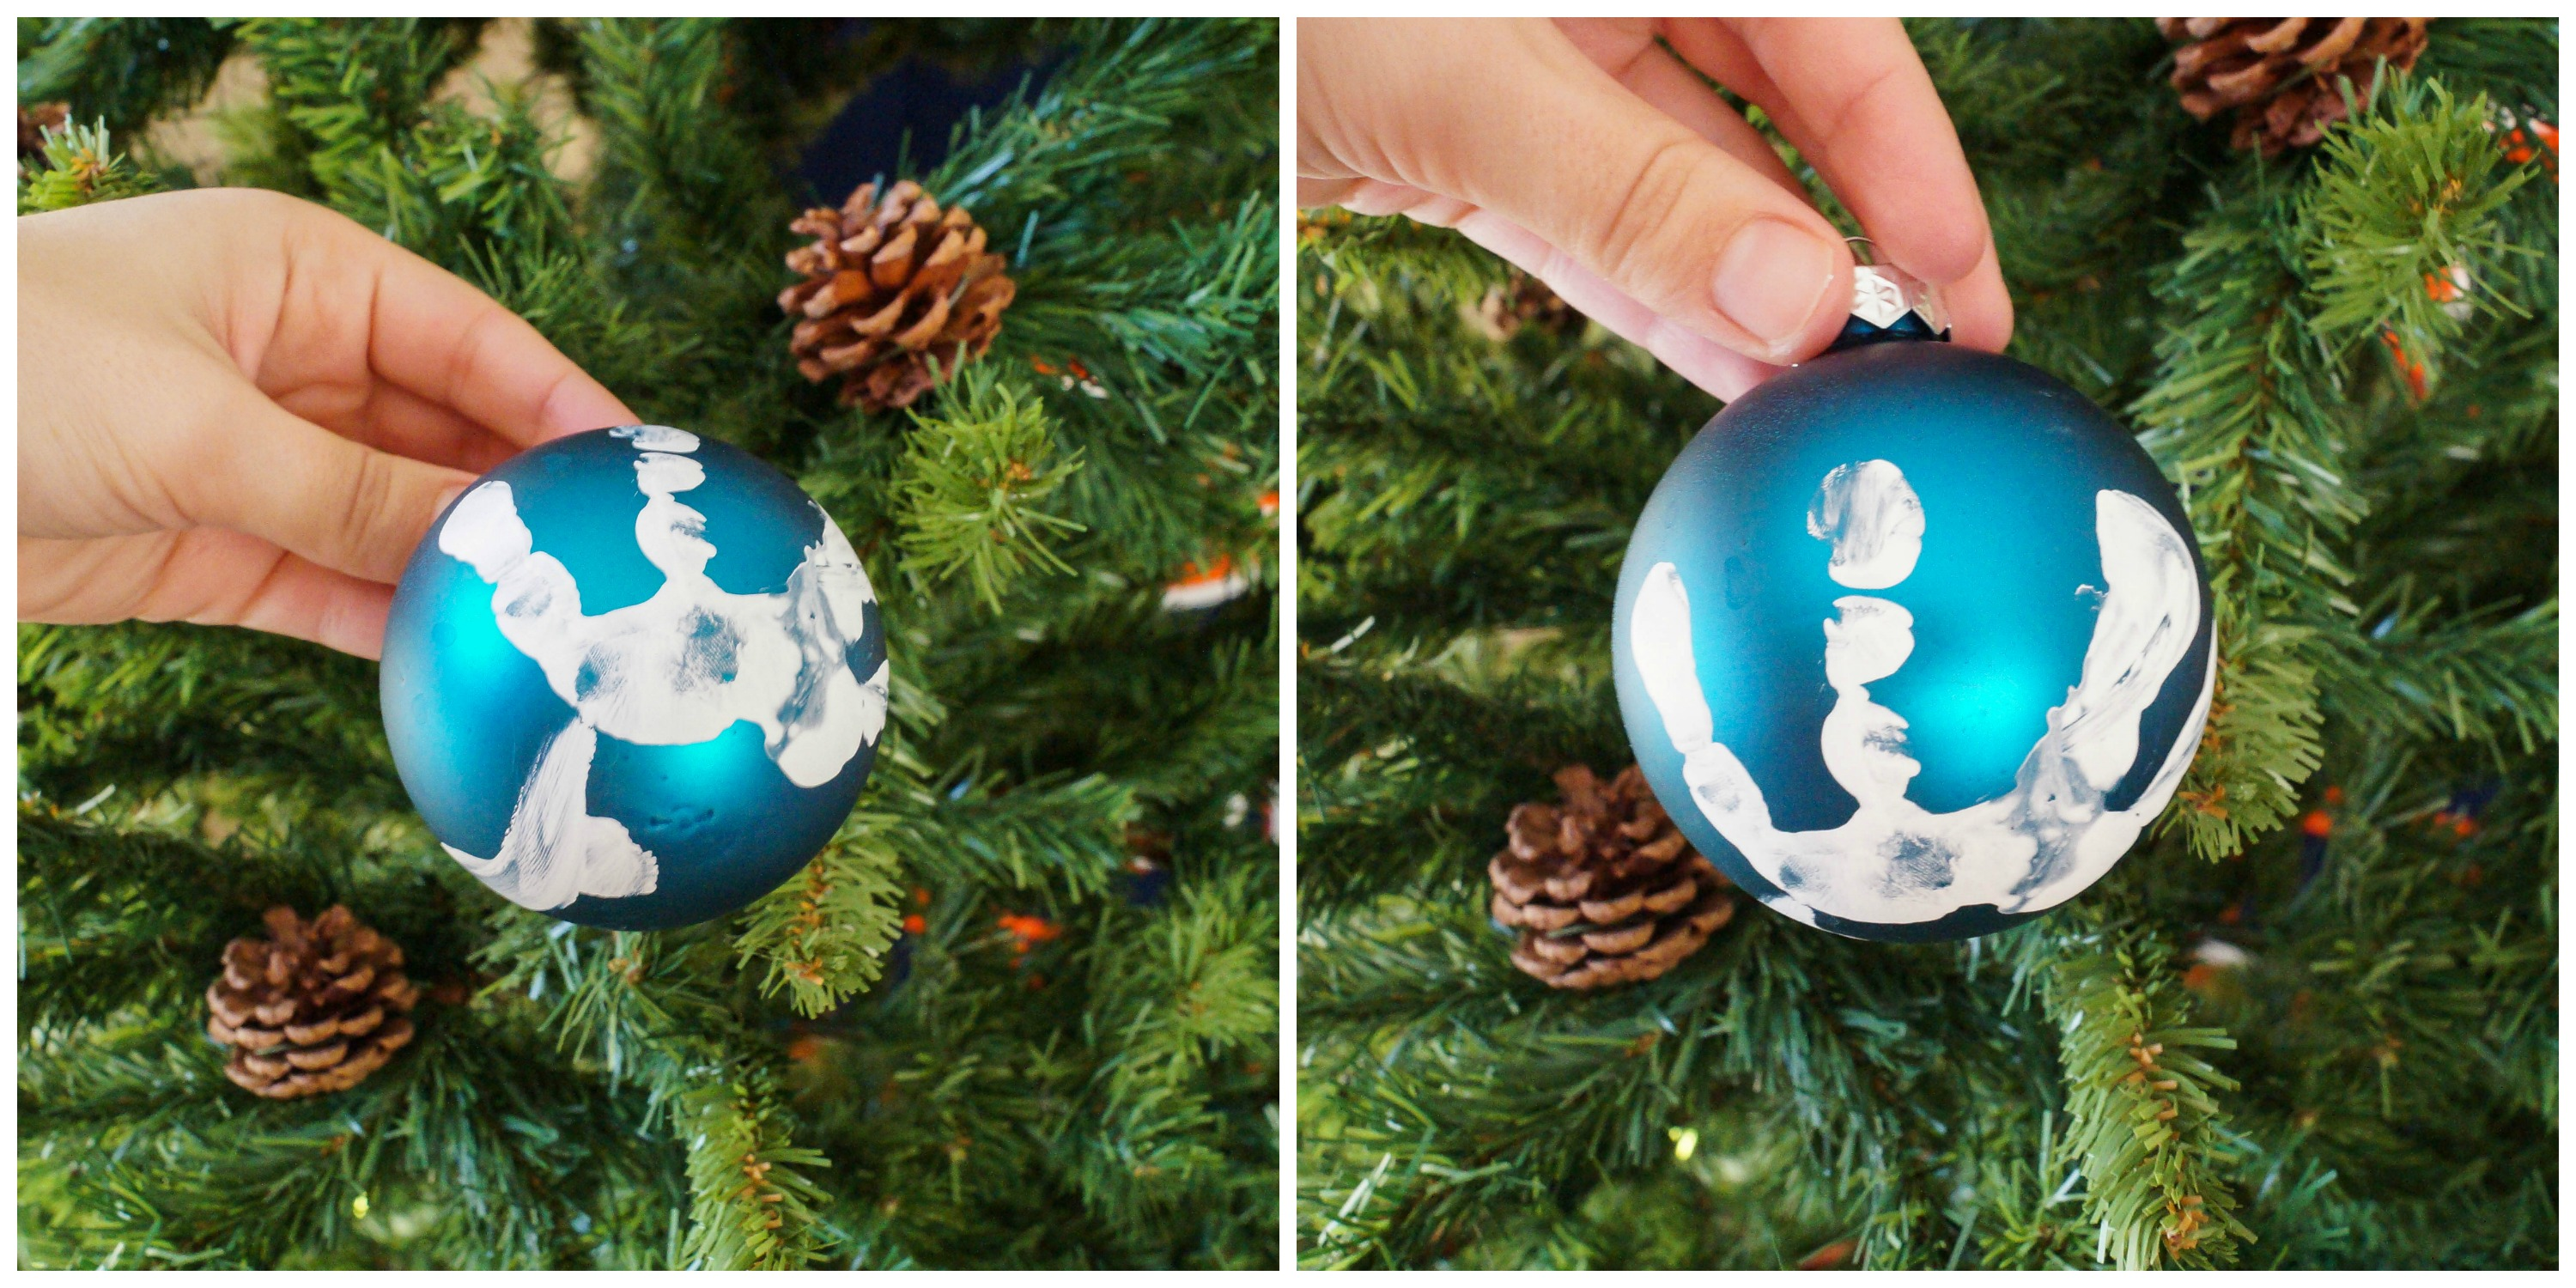 I bought blue round ornaments from Walmart. I put a thin layer of acrylic paint on a paper plate and had Evan ... & Christmas Gift Ideas - Tara\u0027s Multicultural Table